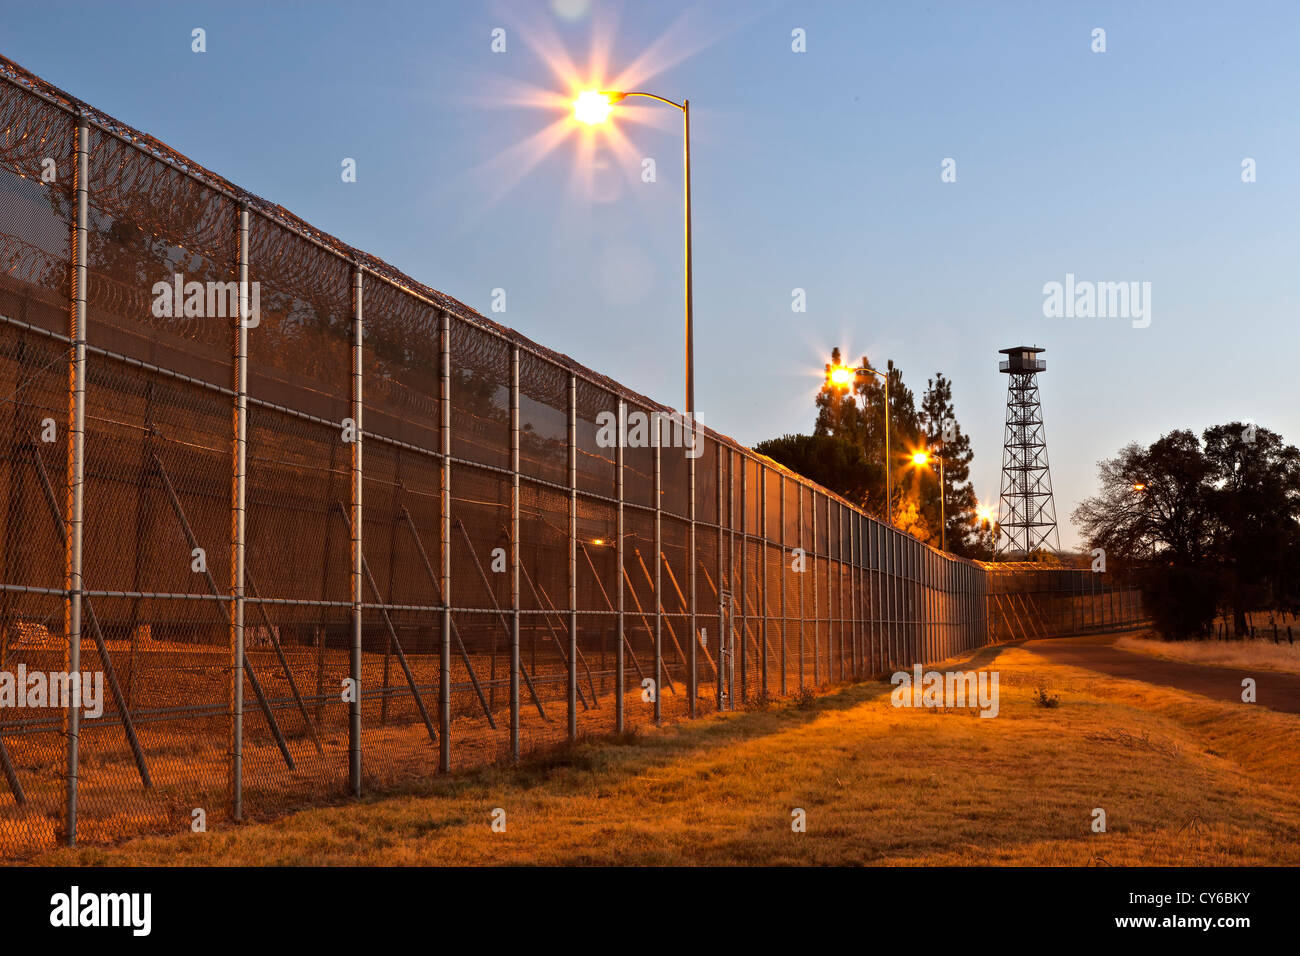 Prison security fence, tower, before sunrise. - Stock Image